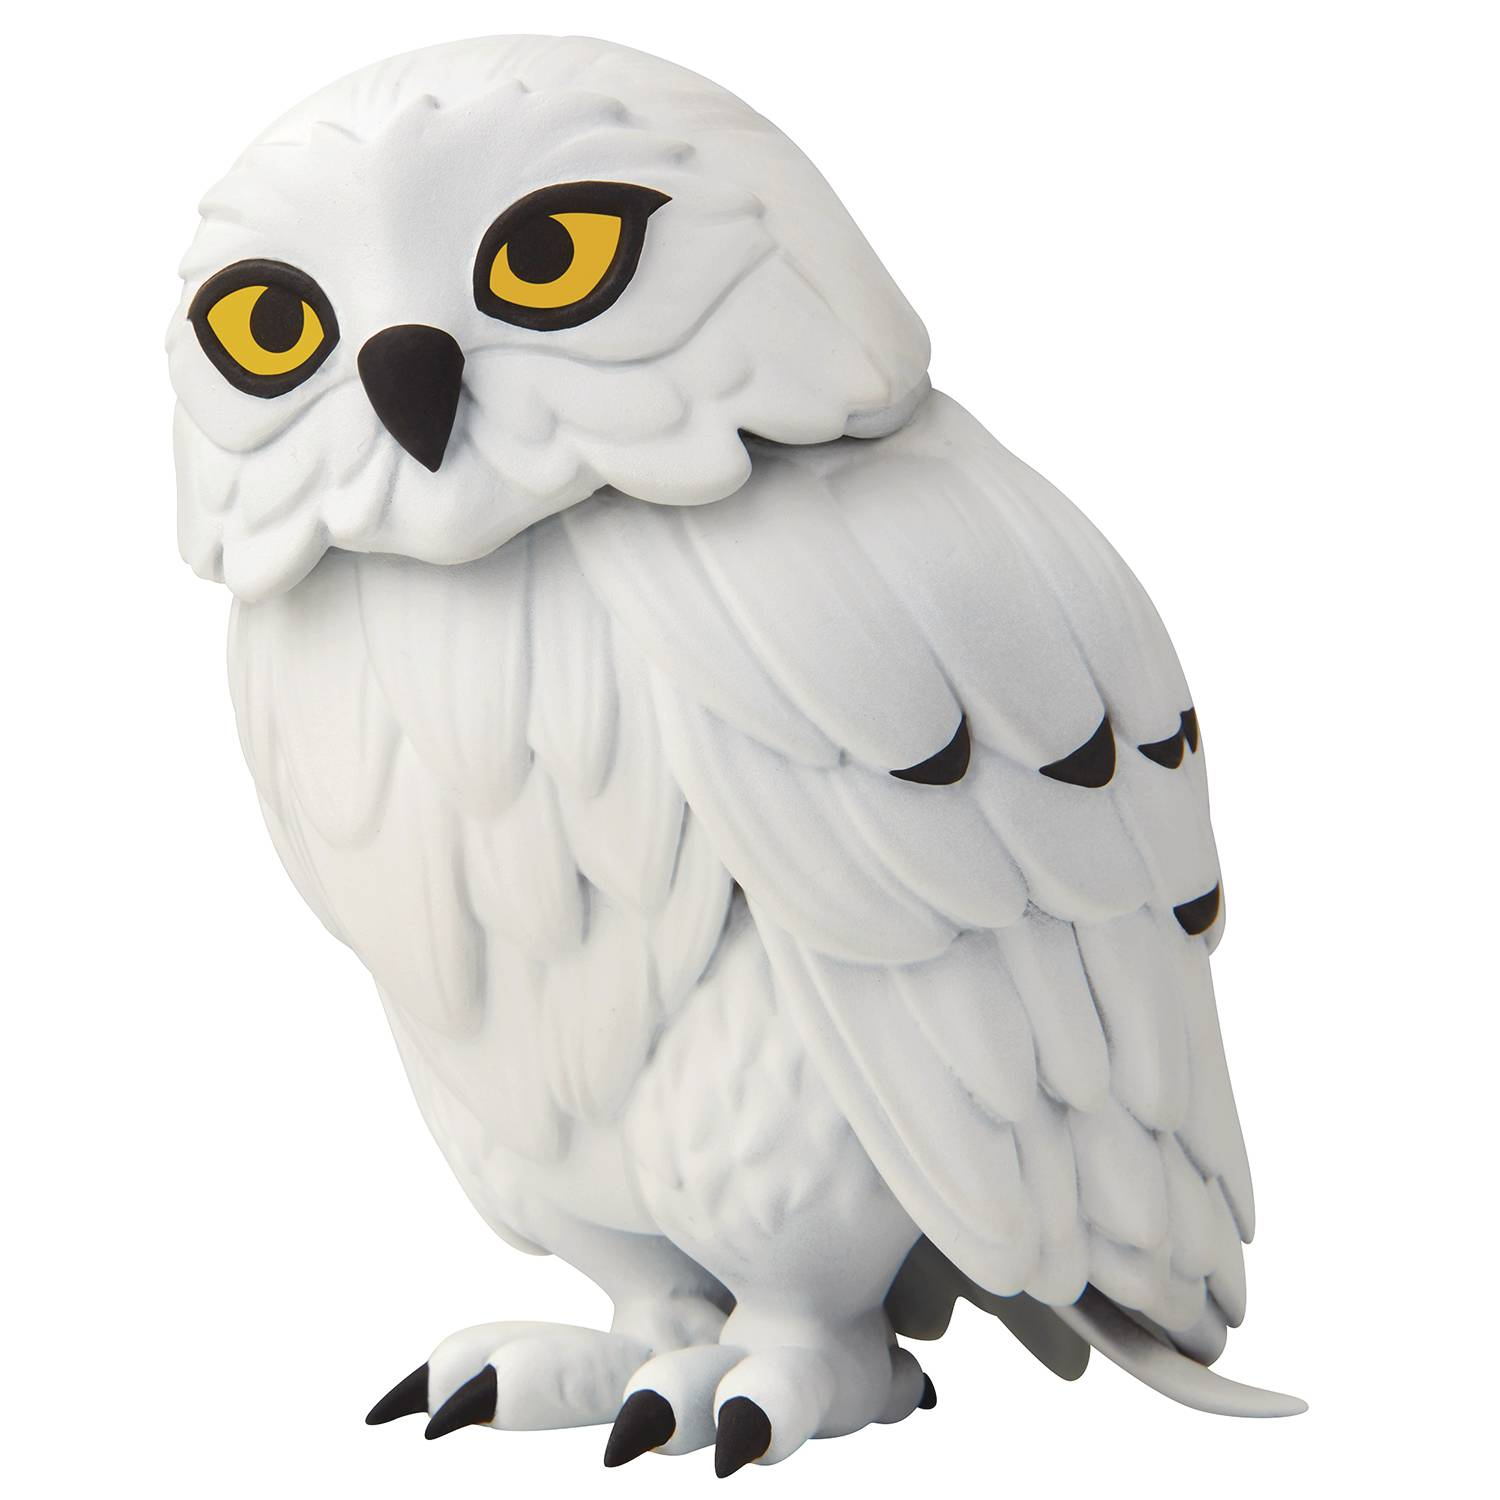 HARRY POTTER INTERACTIVE HEDWIG FIGURE CS